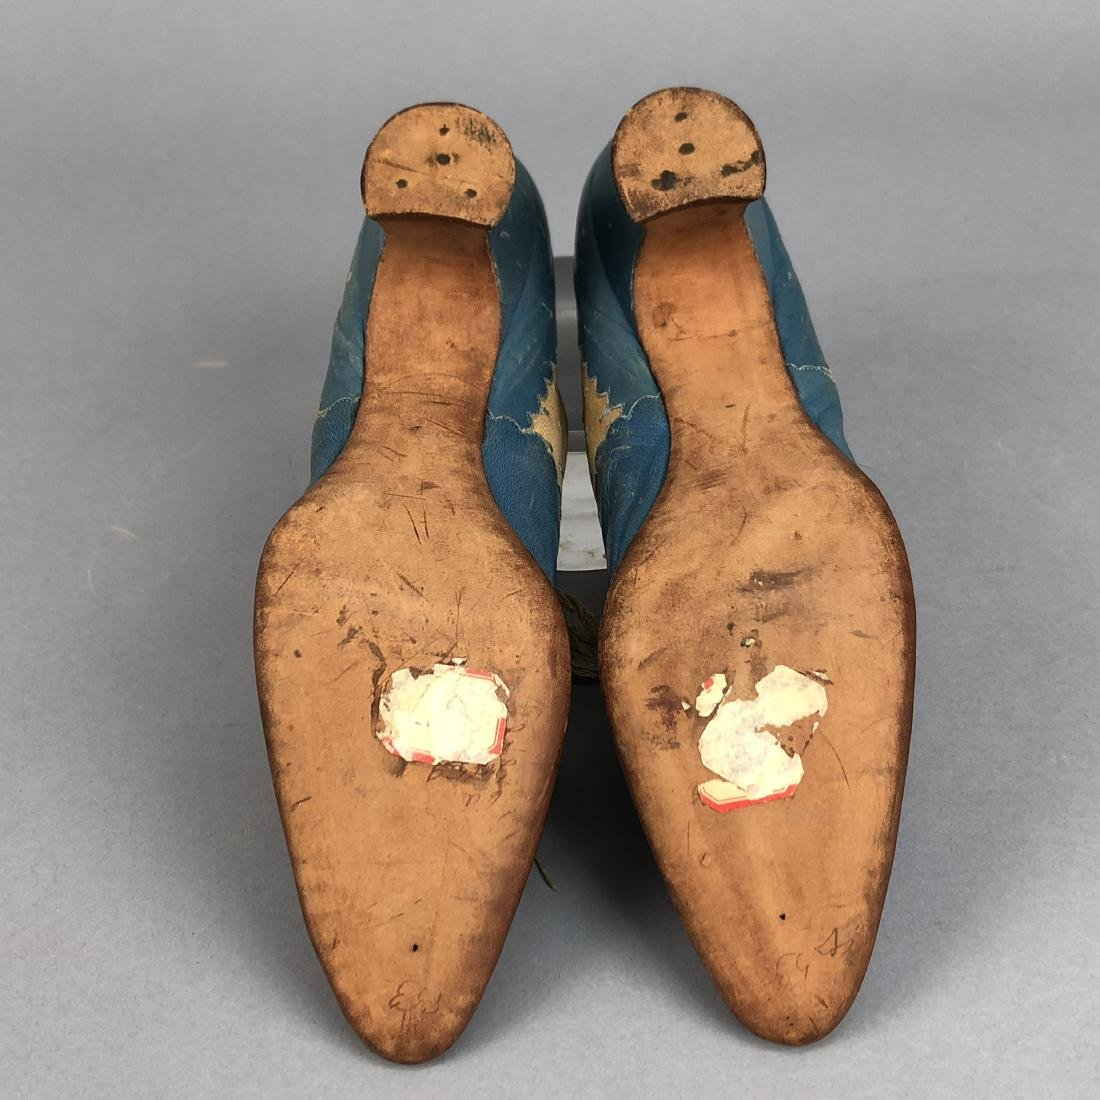 LACING LEATHER SHOES with DOTTED INSERTS, 1890 - 1895 - 4